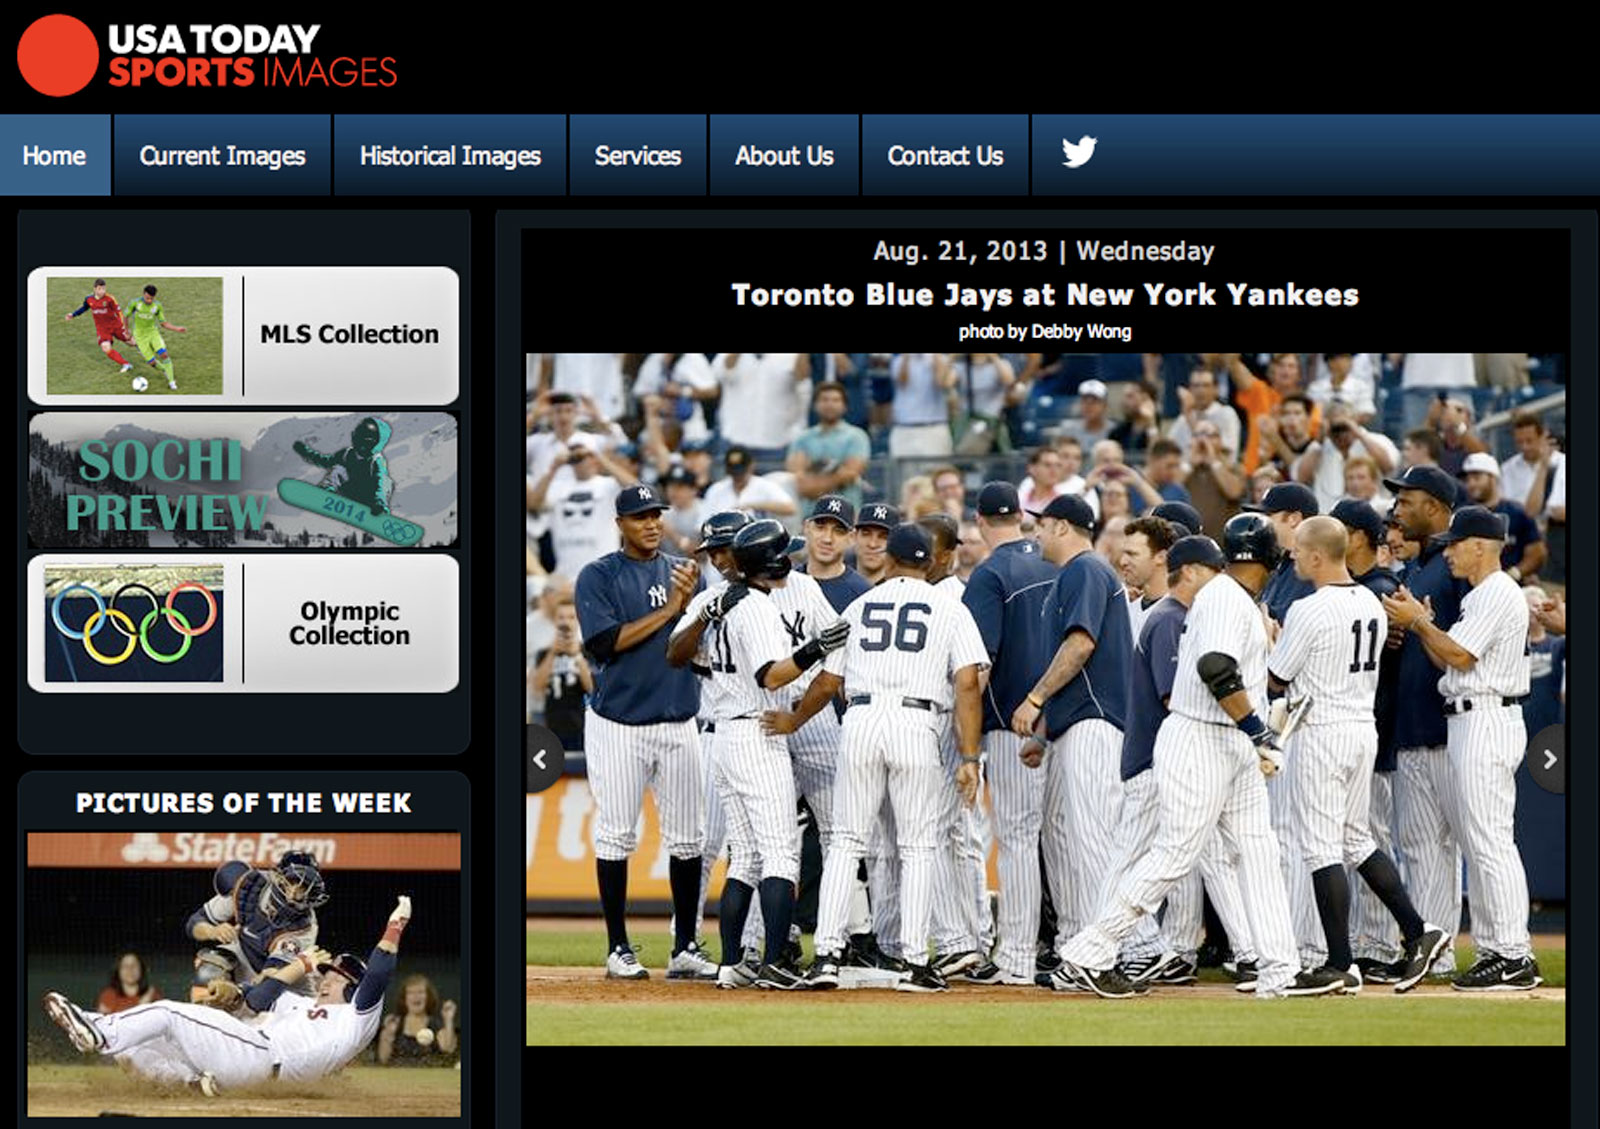 The USA Today Sports Images Web site.